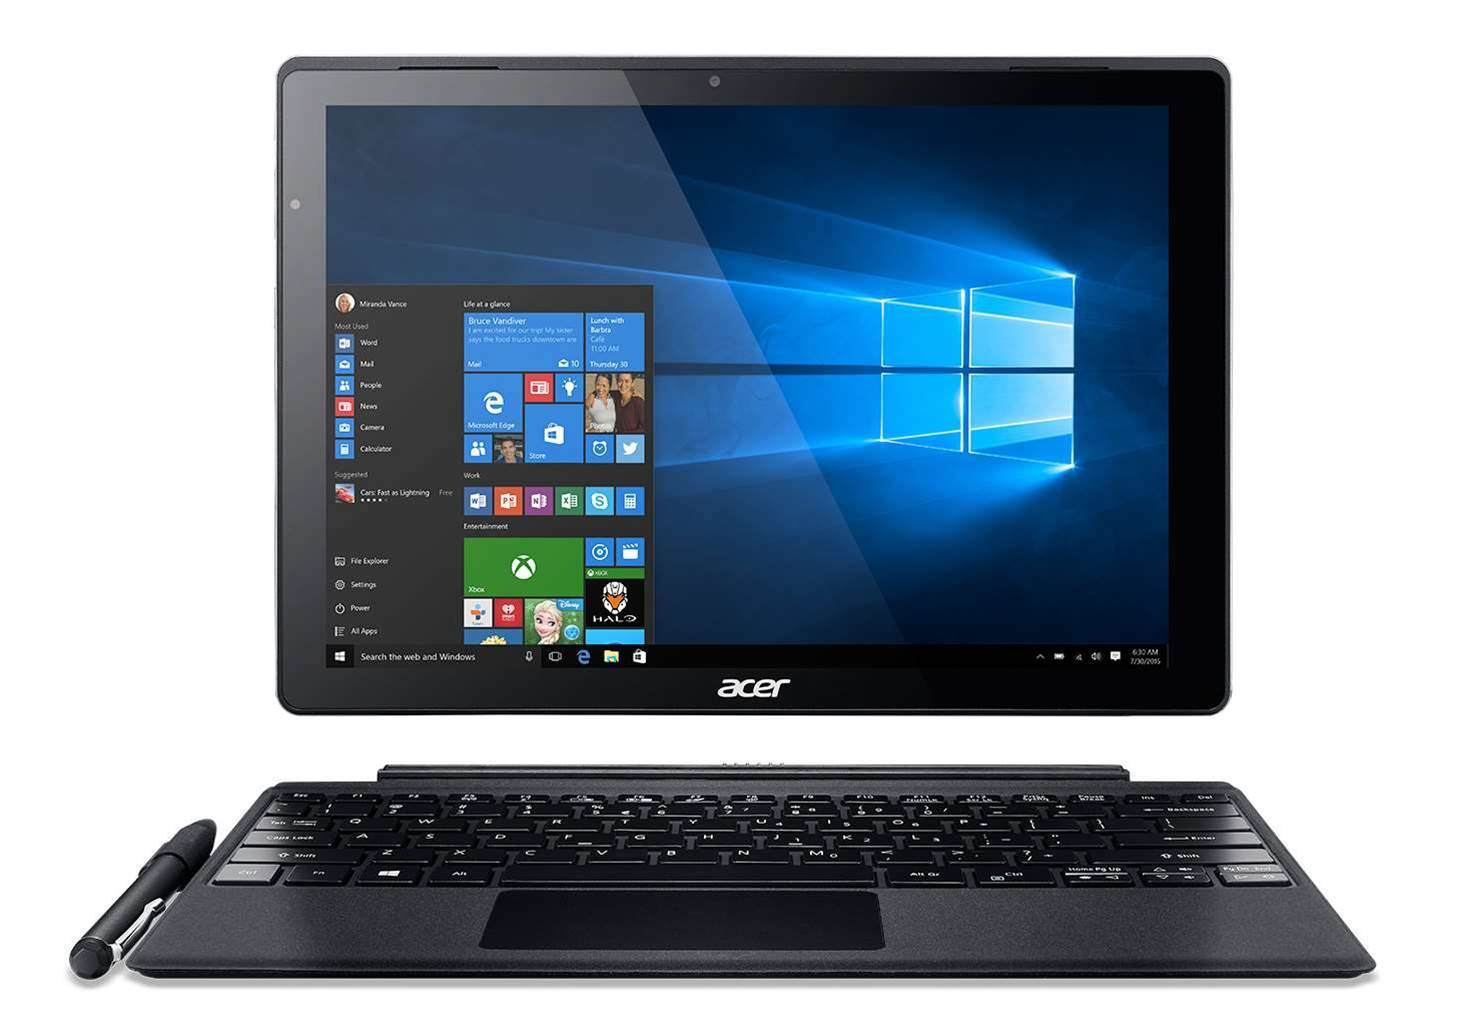 Acer announces the Switch Alpha 12 - a liquid-cooled, two-in-one hybrid